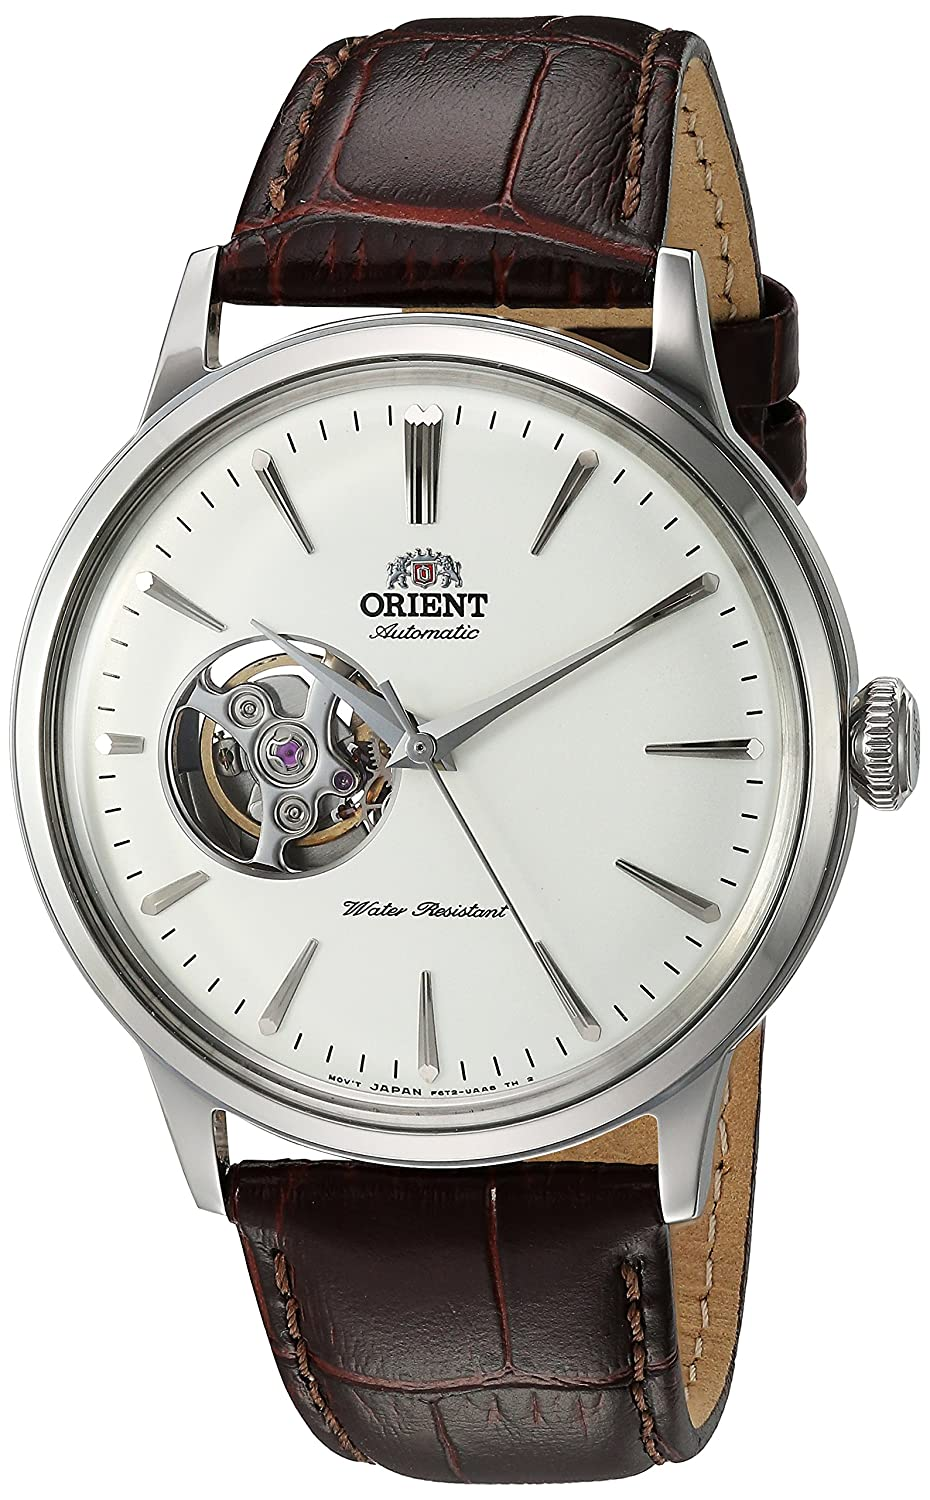 Orient Men 's ' Bambinoオープンハート' Japanese AutomaticステンレススチールandレザーDress Watch, Color : Brown (Model : ra-ag0002s10 a) B07B4C7ZP4